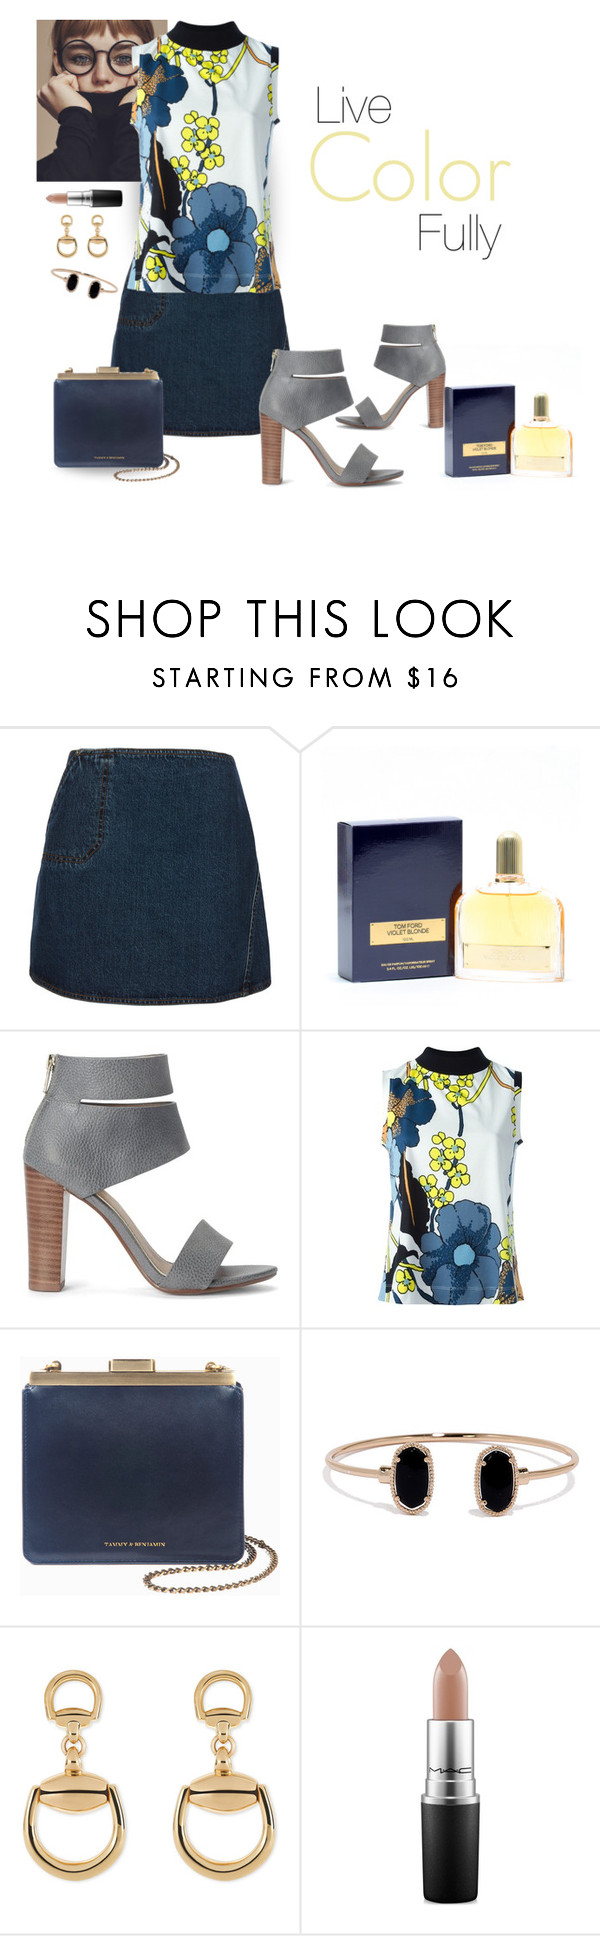 """Live it"" by lizard-on-a-rock ❤ liked on Polyvore featuring Courrèges, Tom Ford, Splendid, Marni, Gucci and MAC Cosmetics"